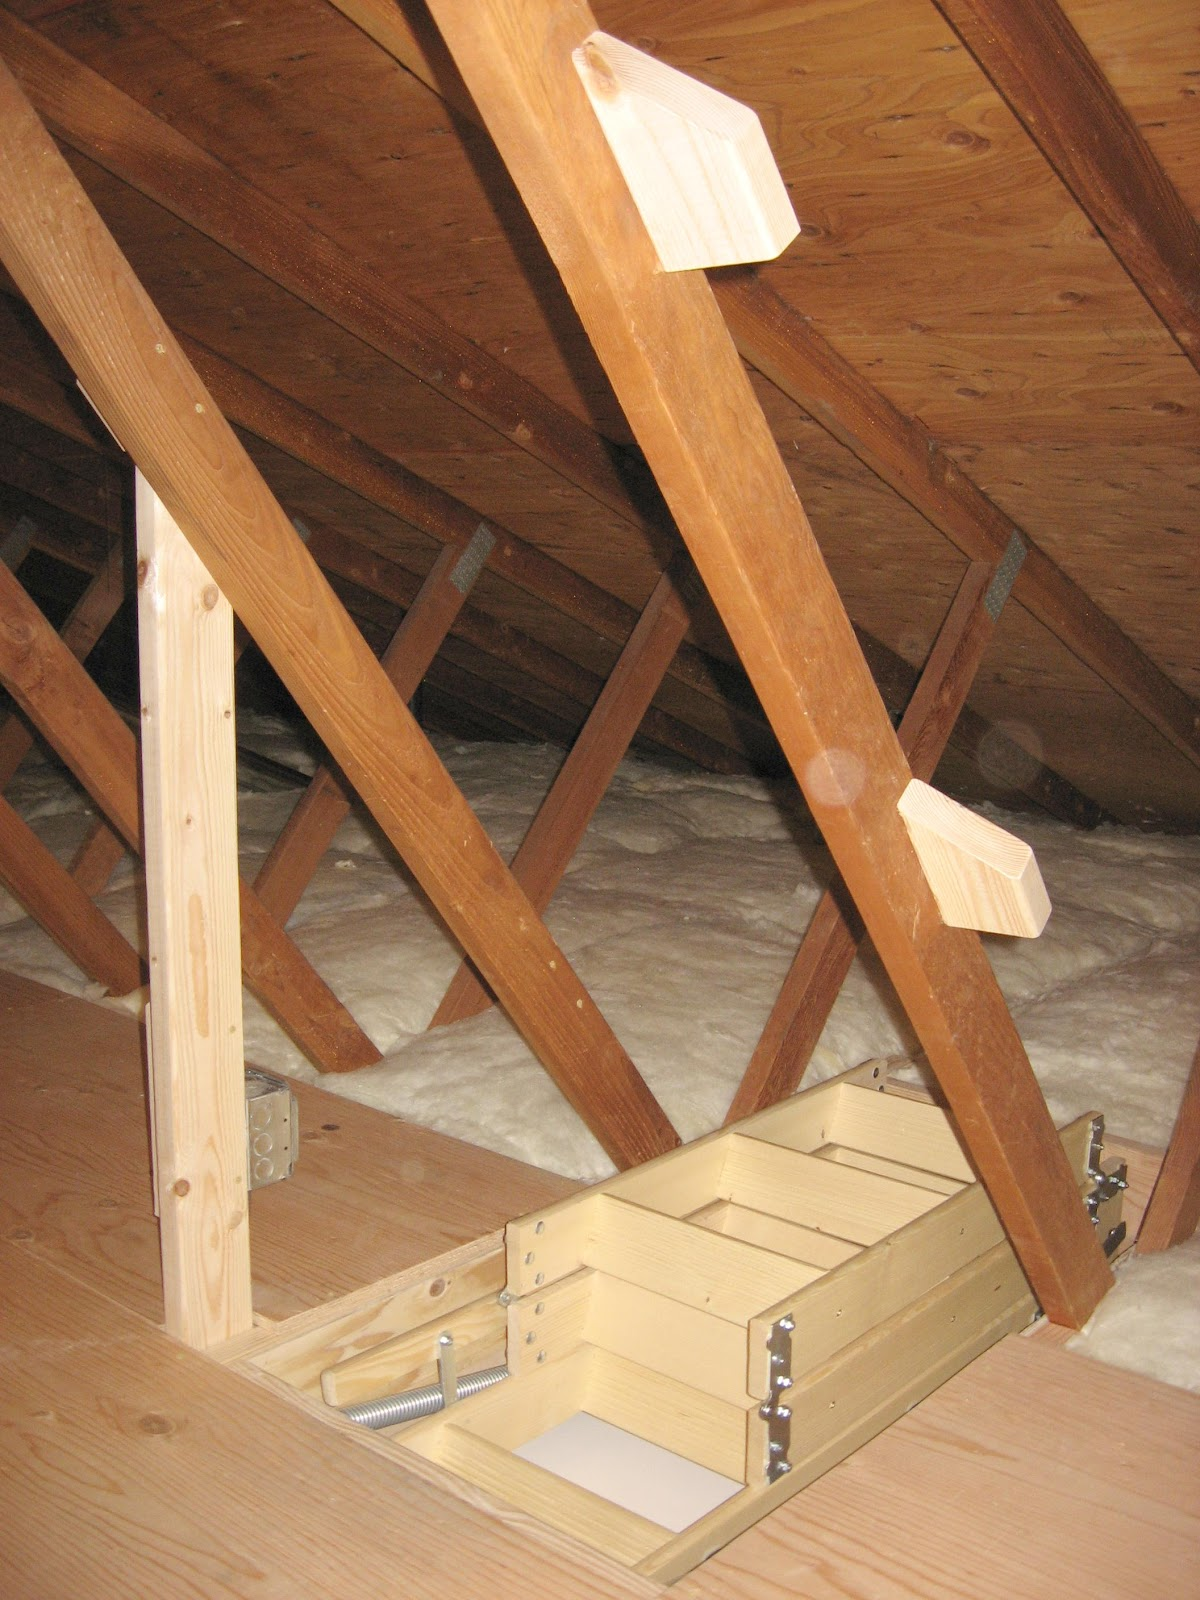 install ladder pull stairs access in out easy door avid services llc inspection find attic down